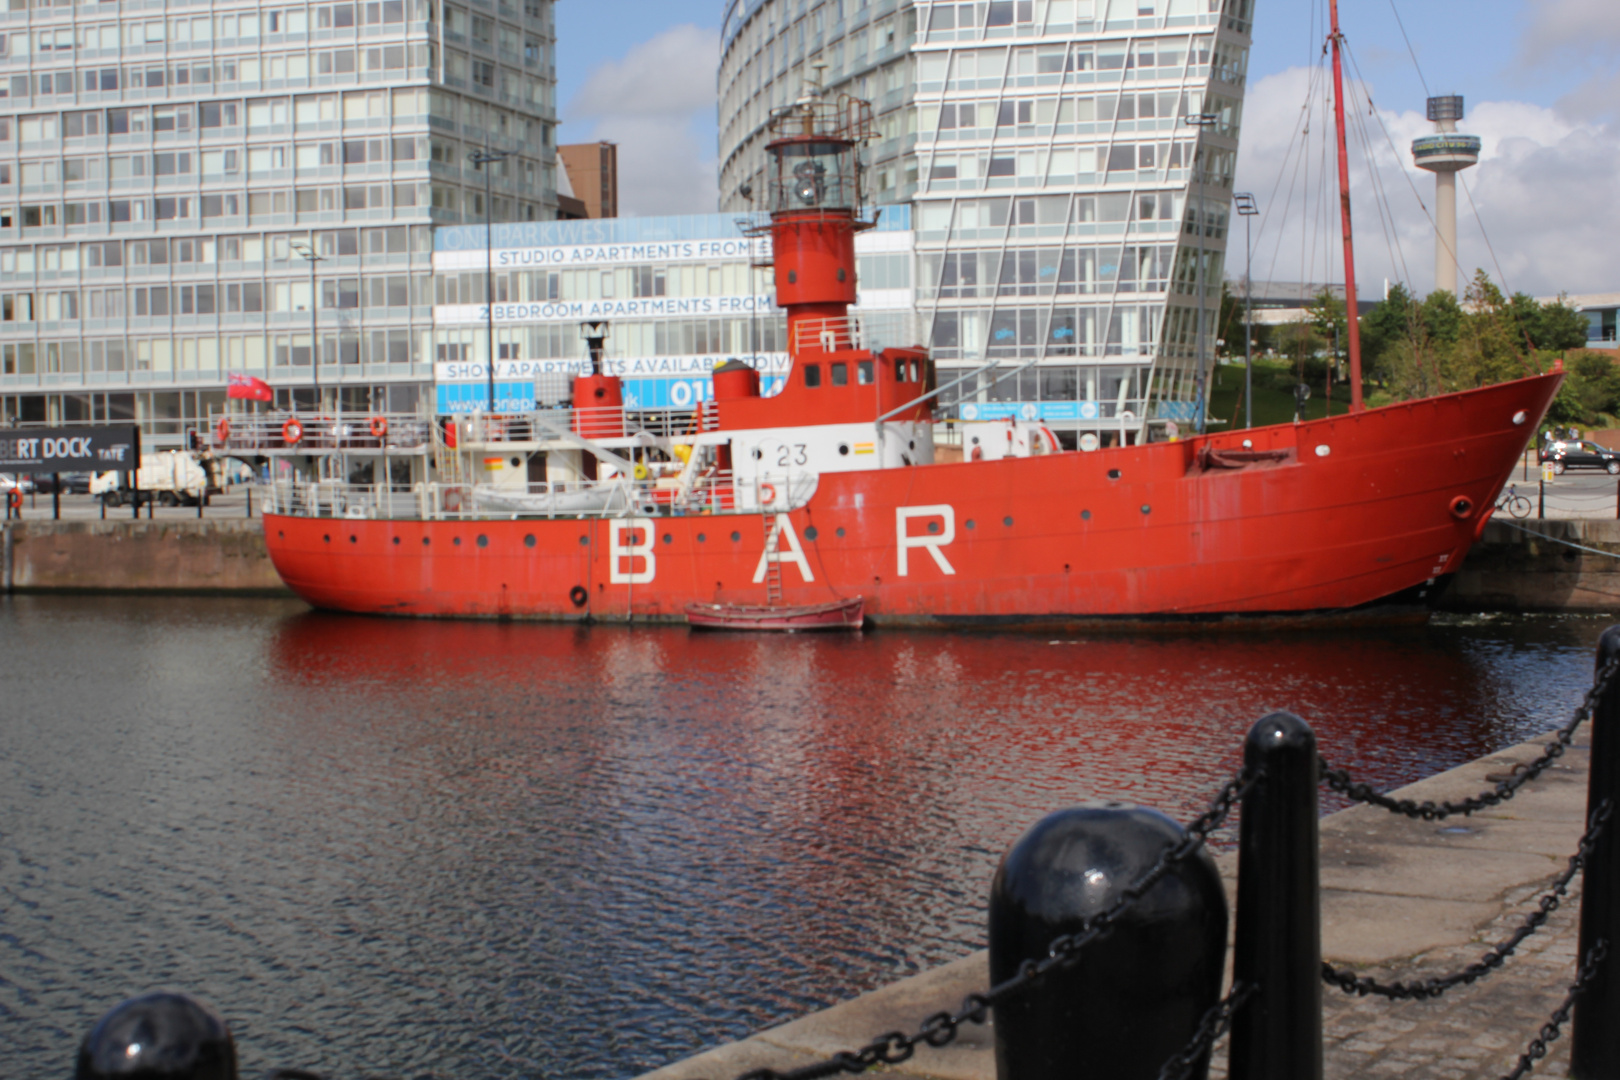 a boat in Liverpool